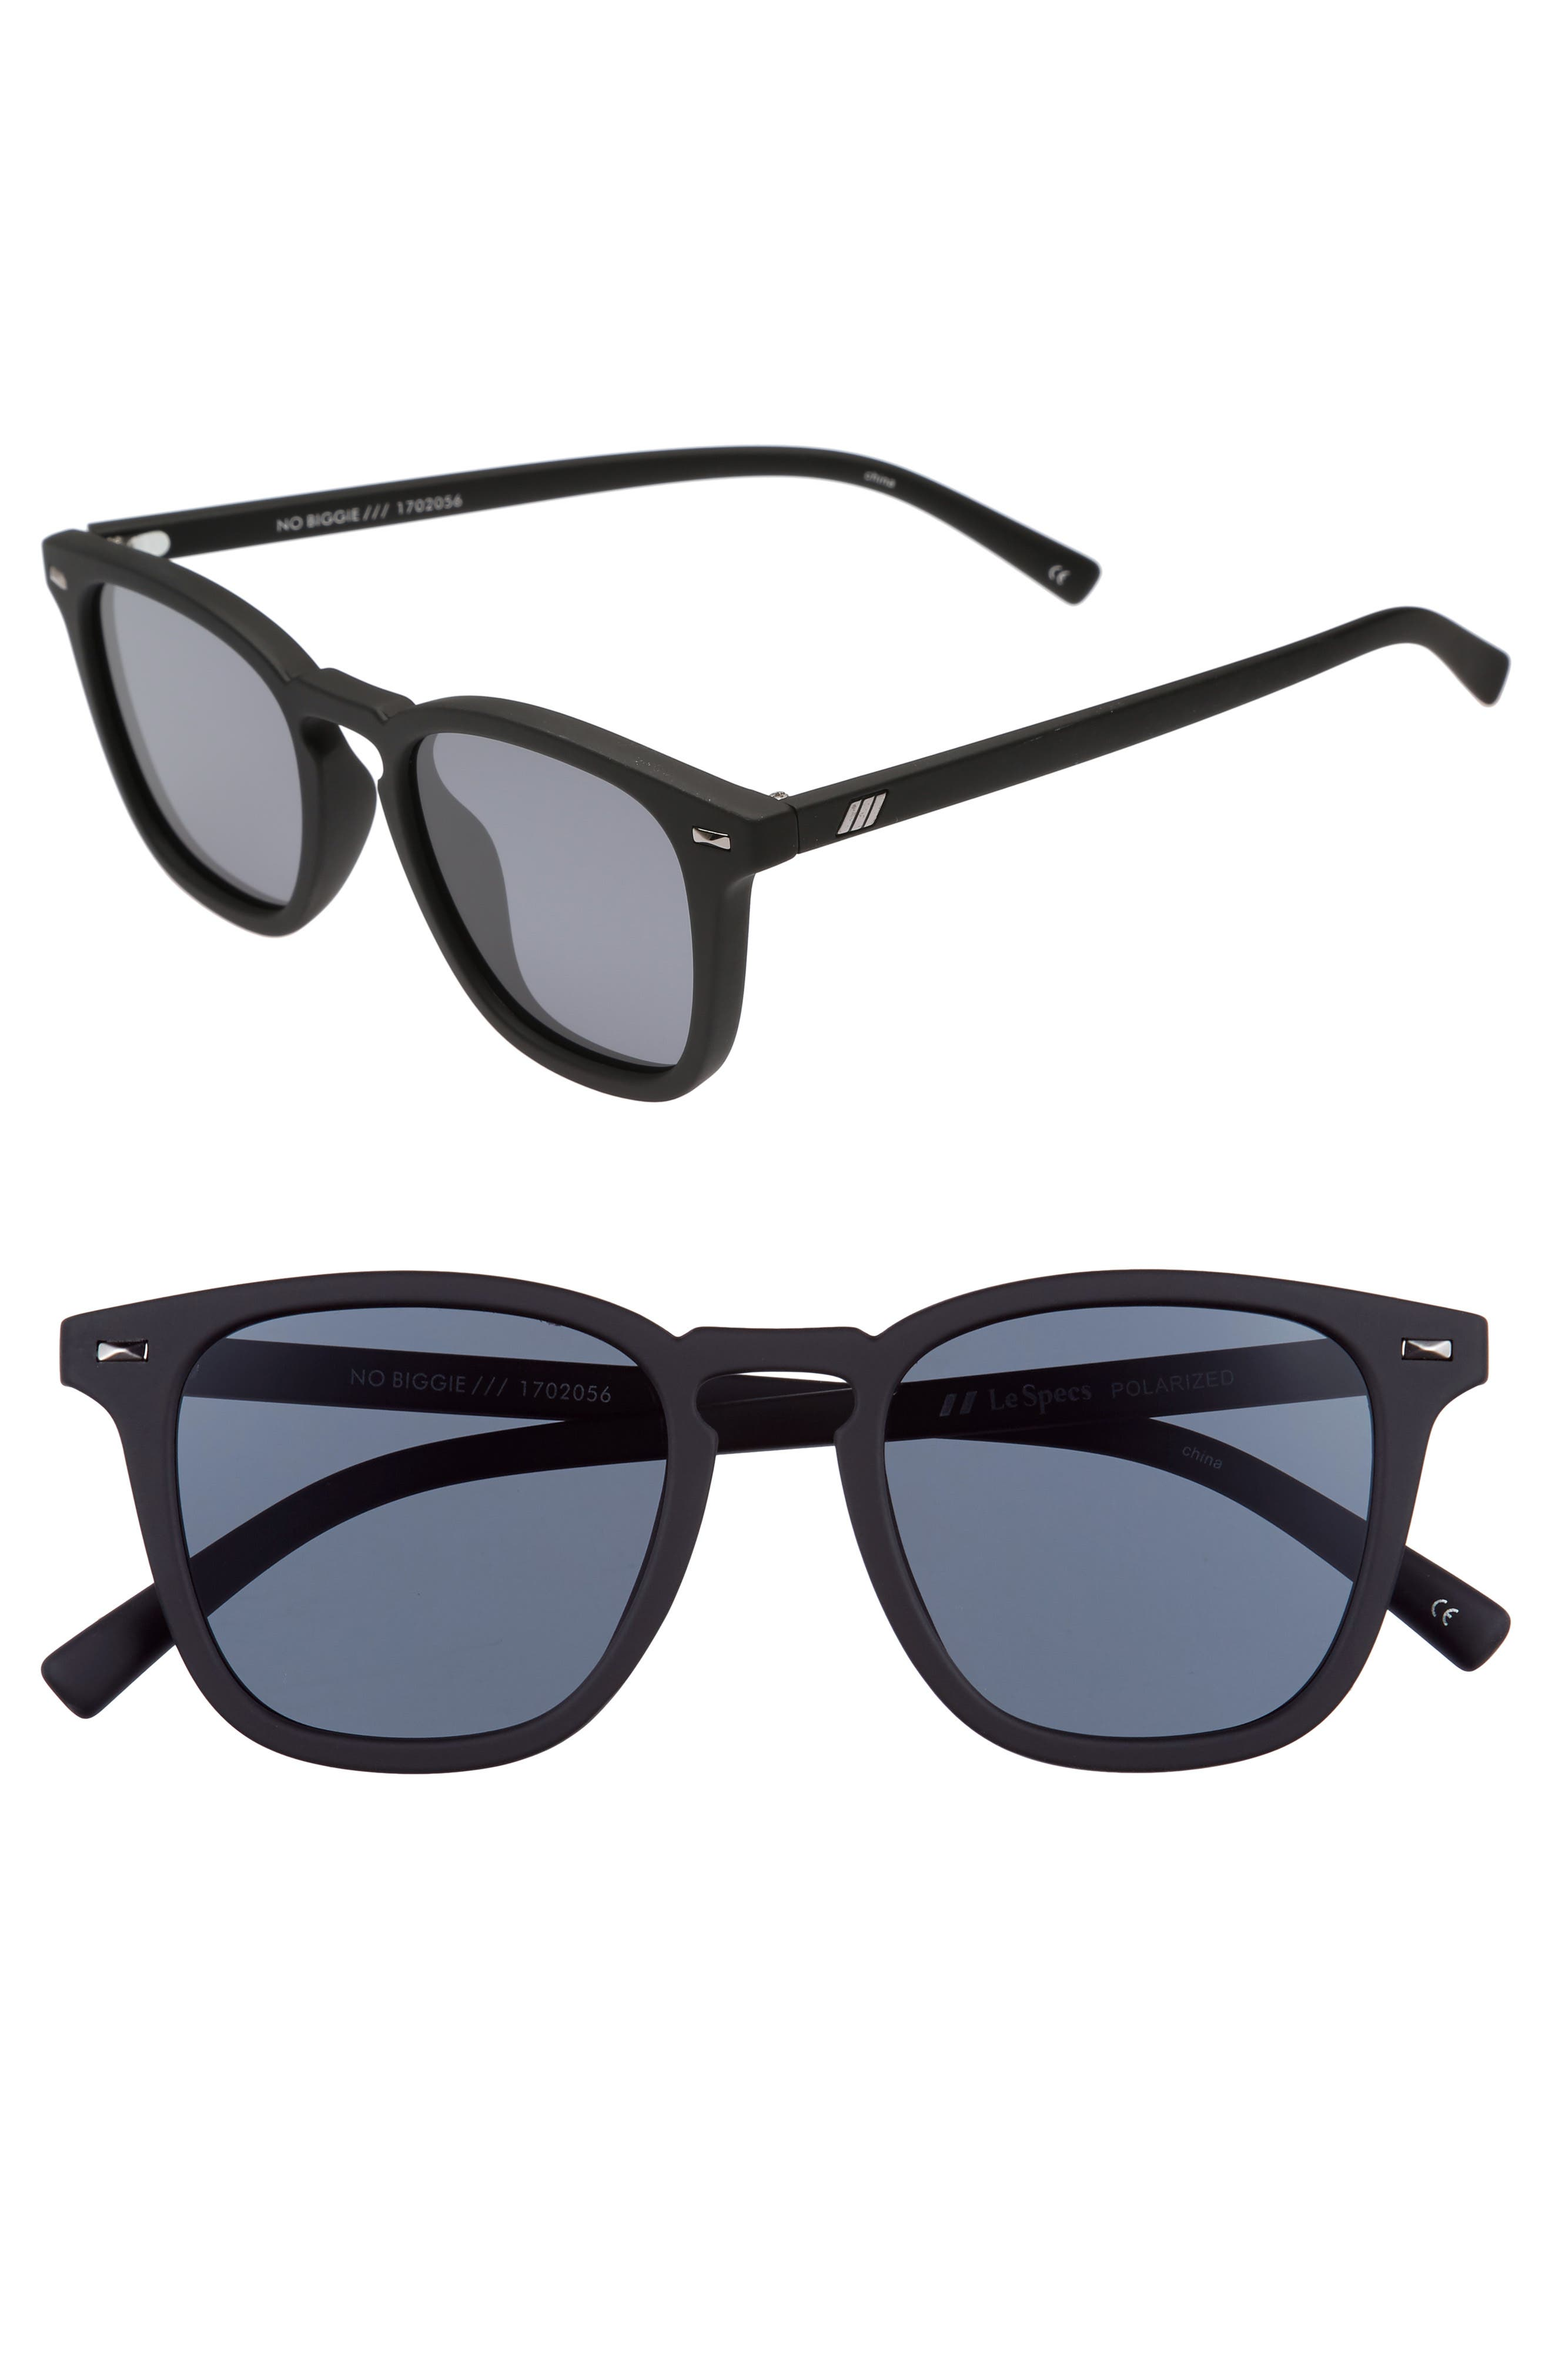 No Biggie 45mm Sunglasses,                         Main,                         color,